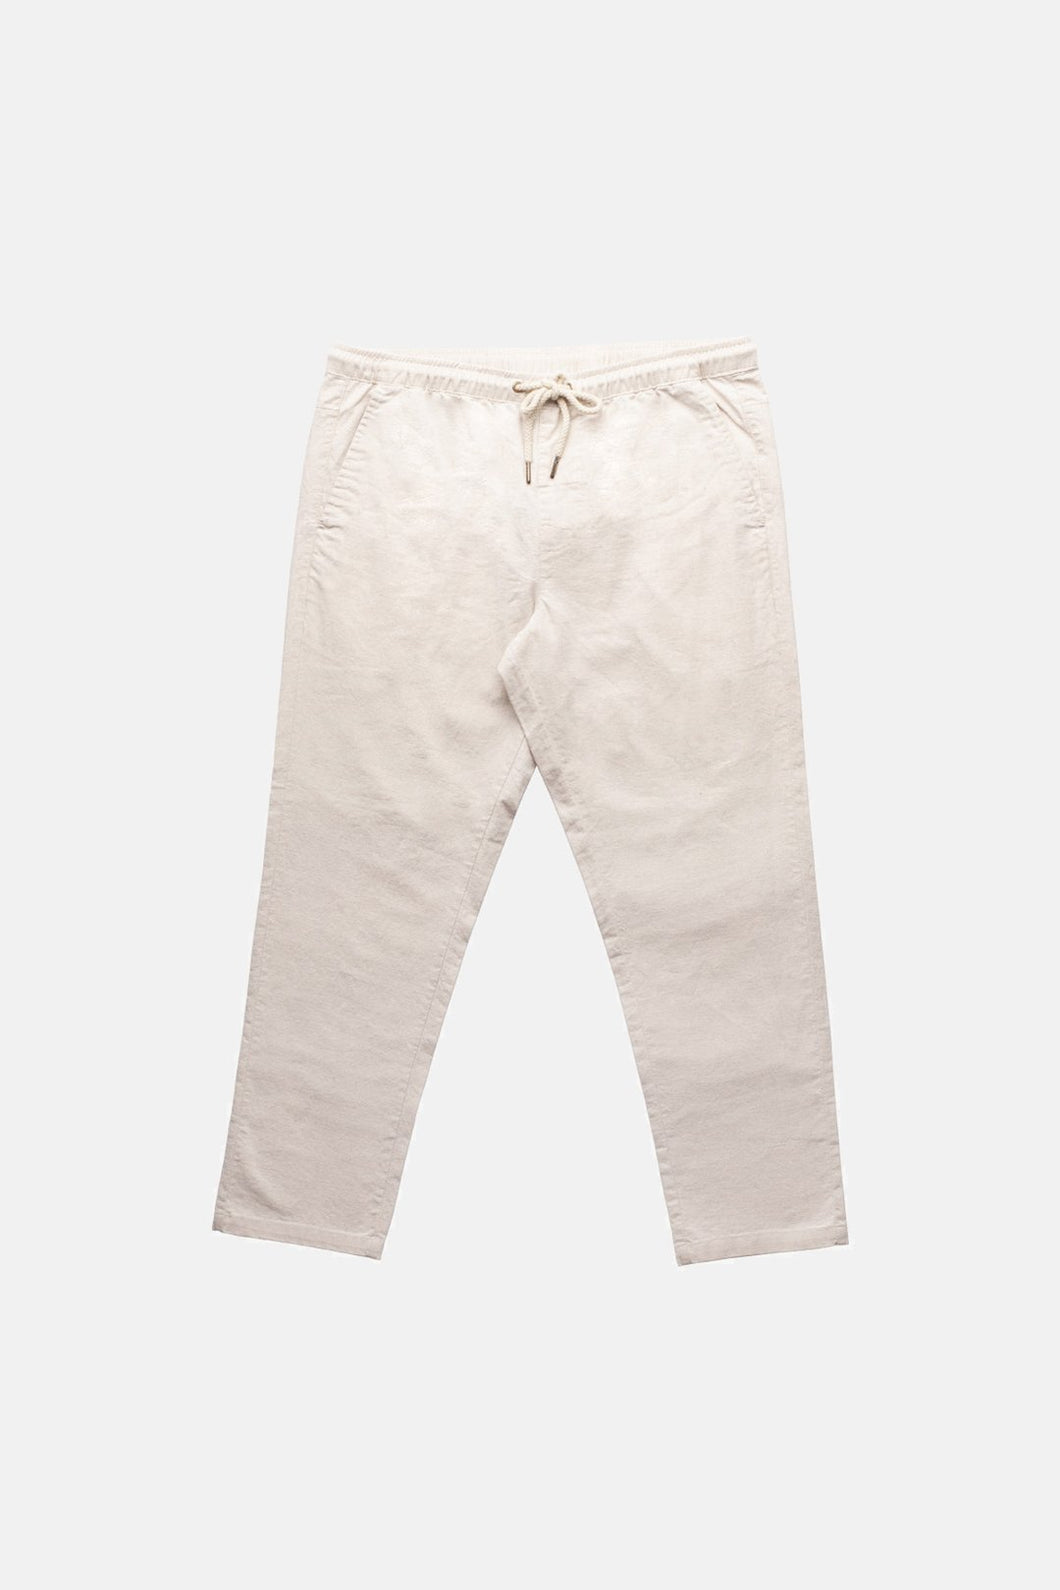 Rhythm linen sunday pant - Bone